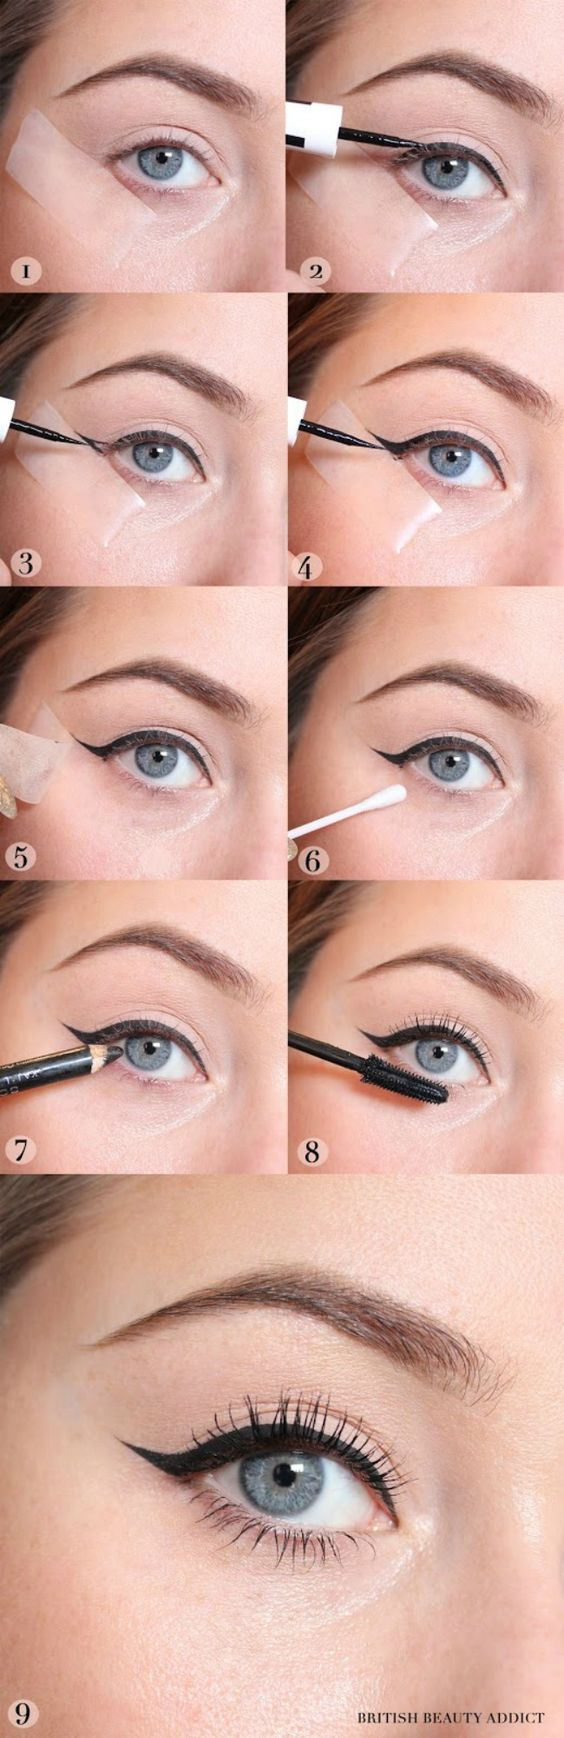 Using tape to create a winged liner is one of the best beauty hacks for the holi...